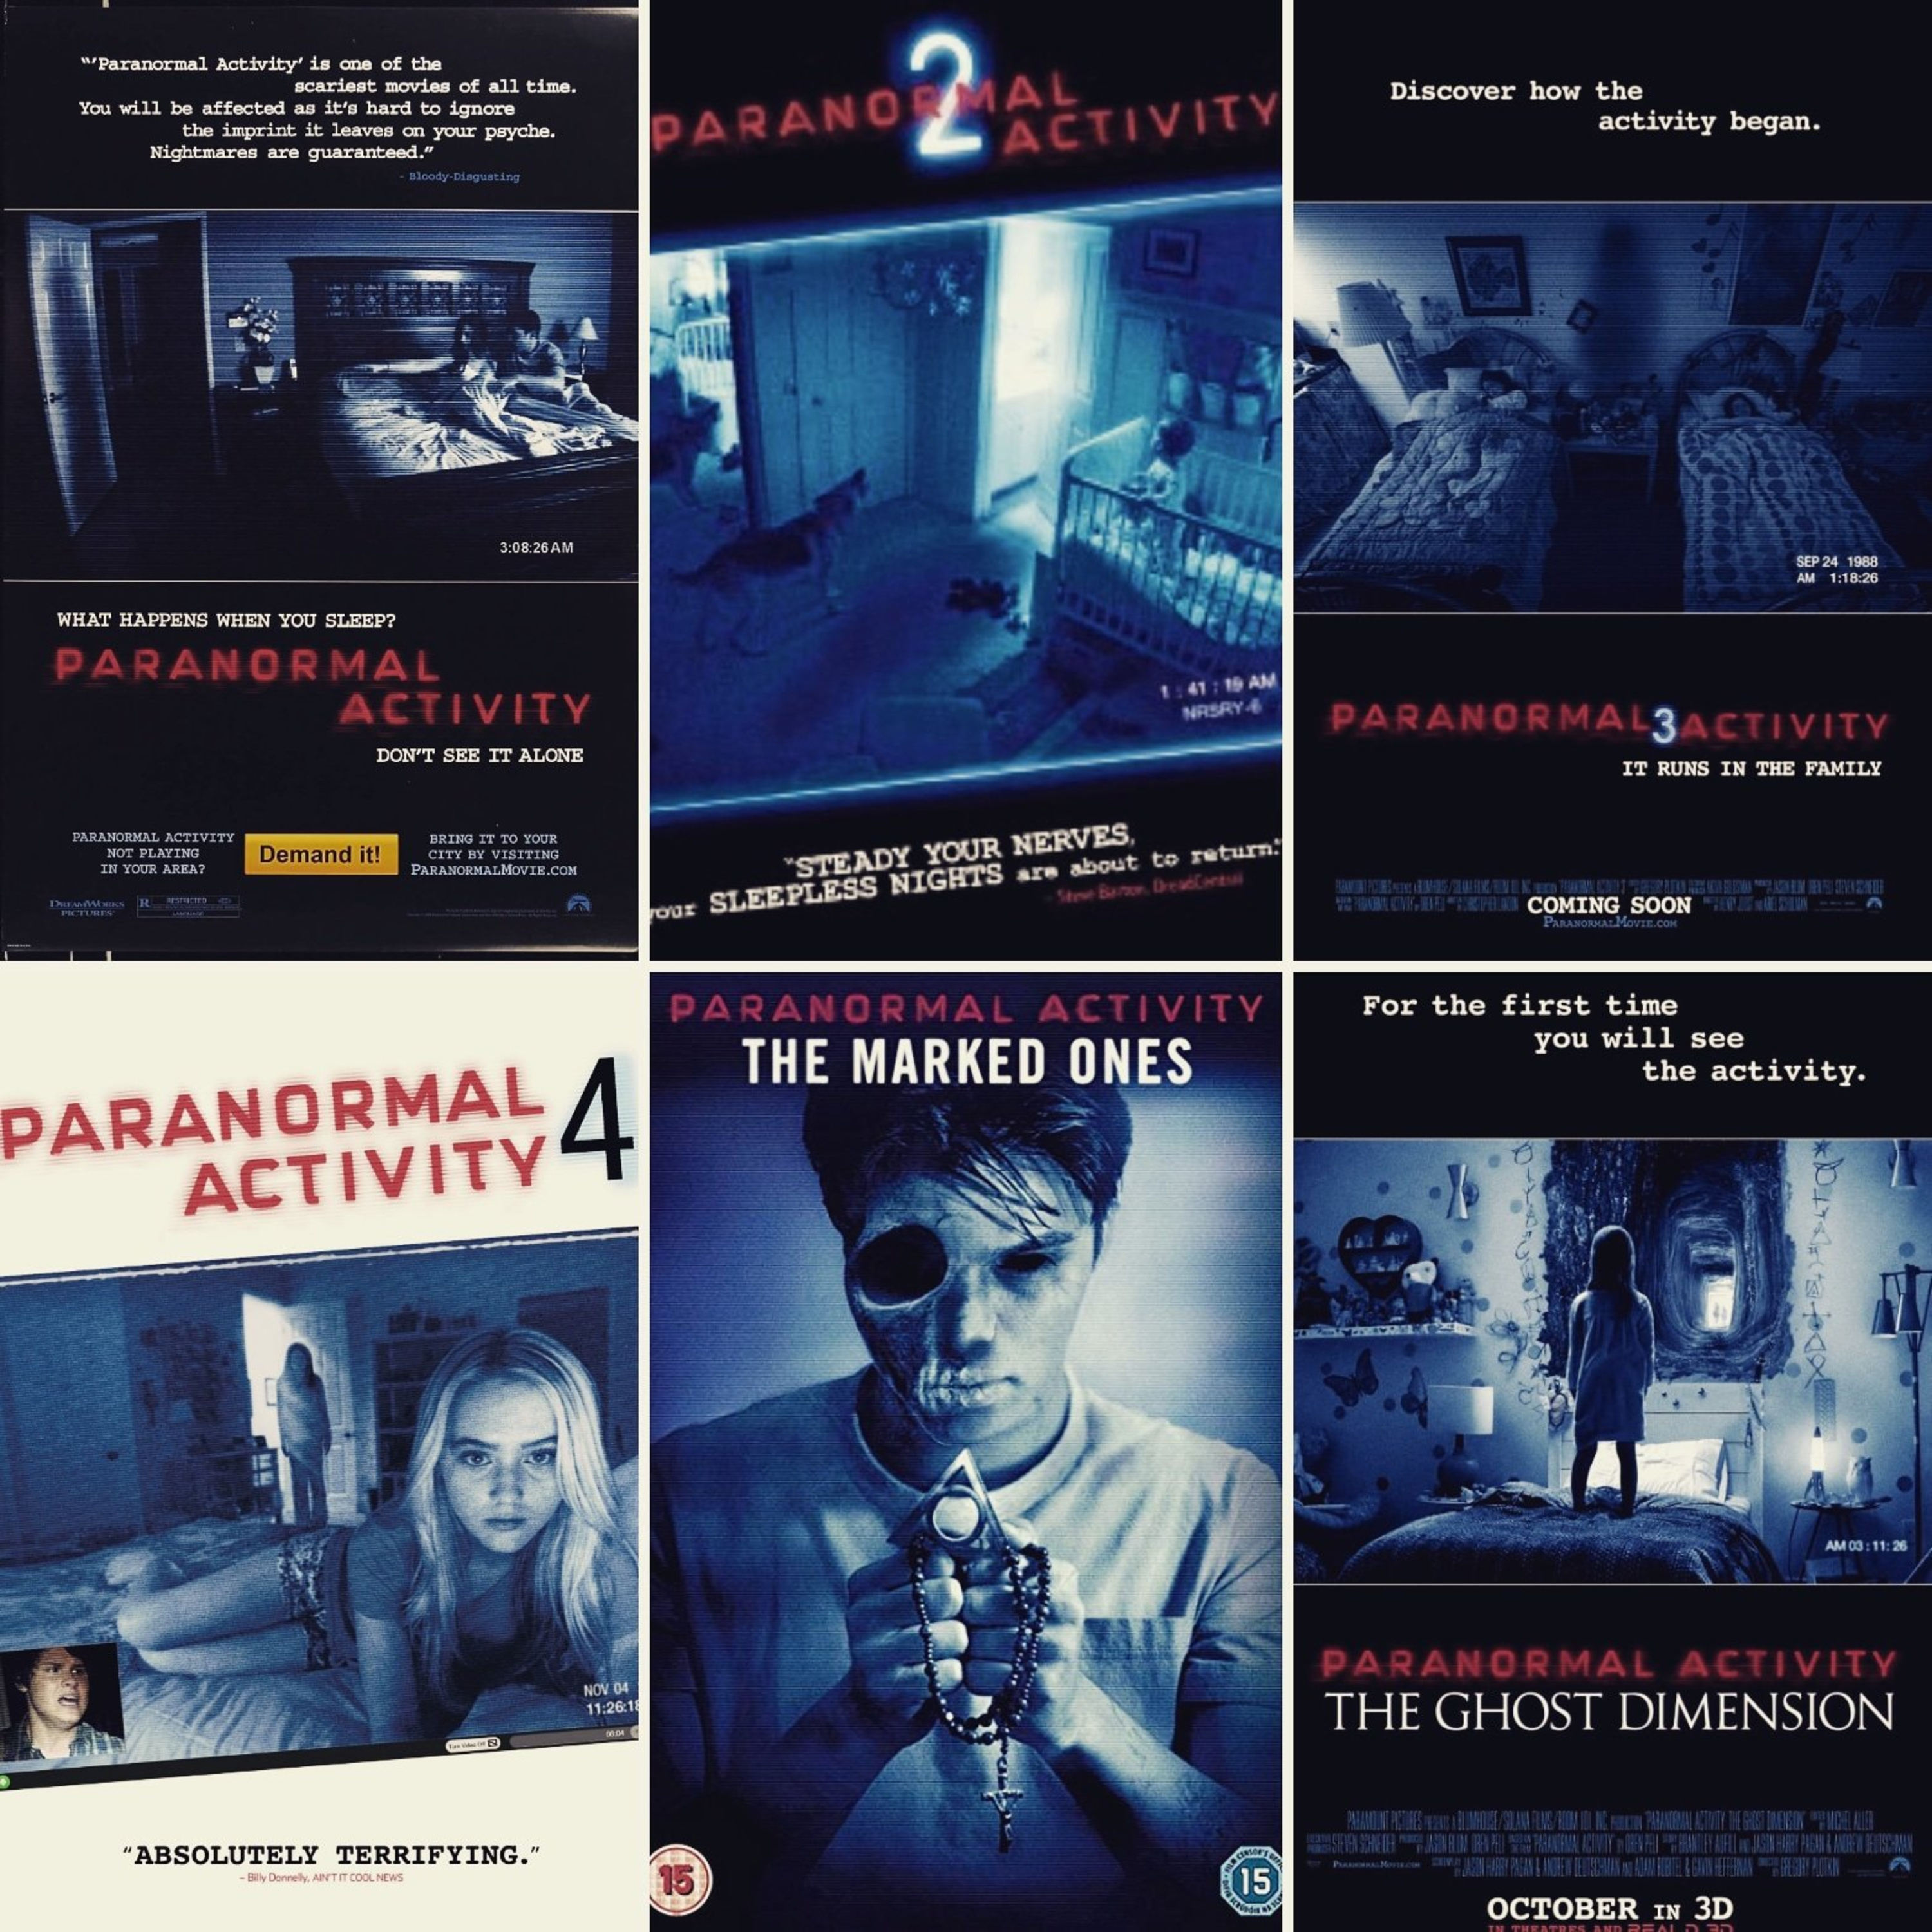 Paranormal Activity 2009 The Shining 1980 Doctor Sleep 2019 Scaretroducing Podcast Podtail